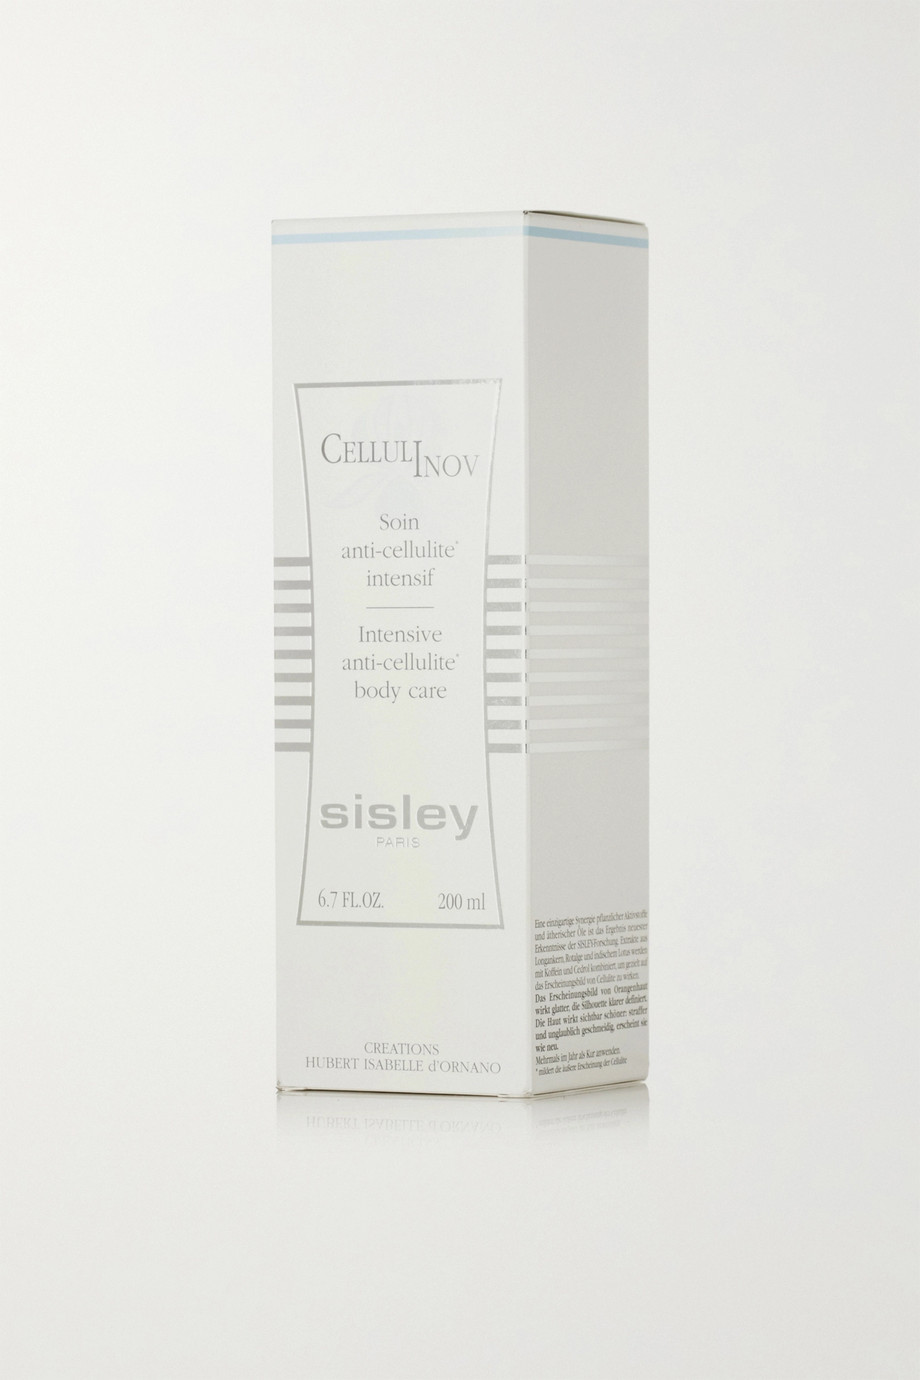 Sisley Cellulinov Intensive Anti-Cellulite Body Care, 200ml